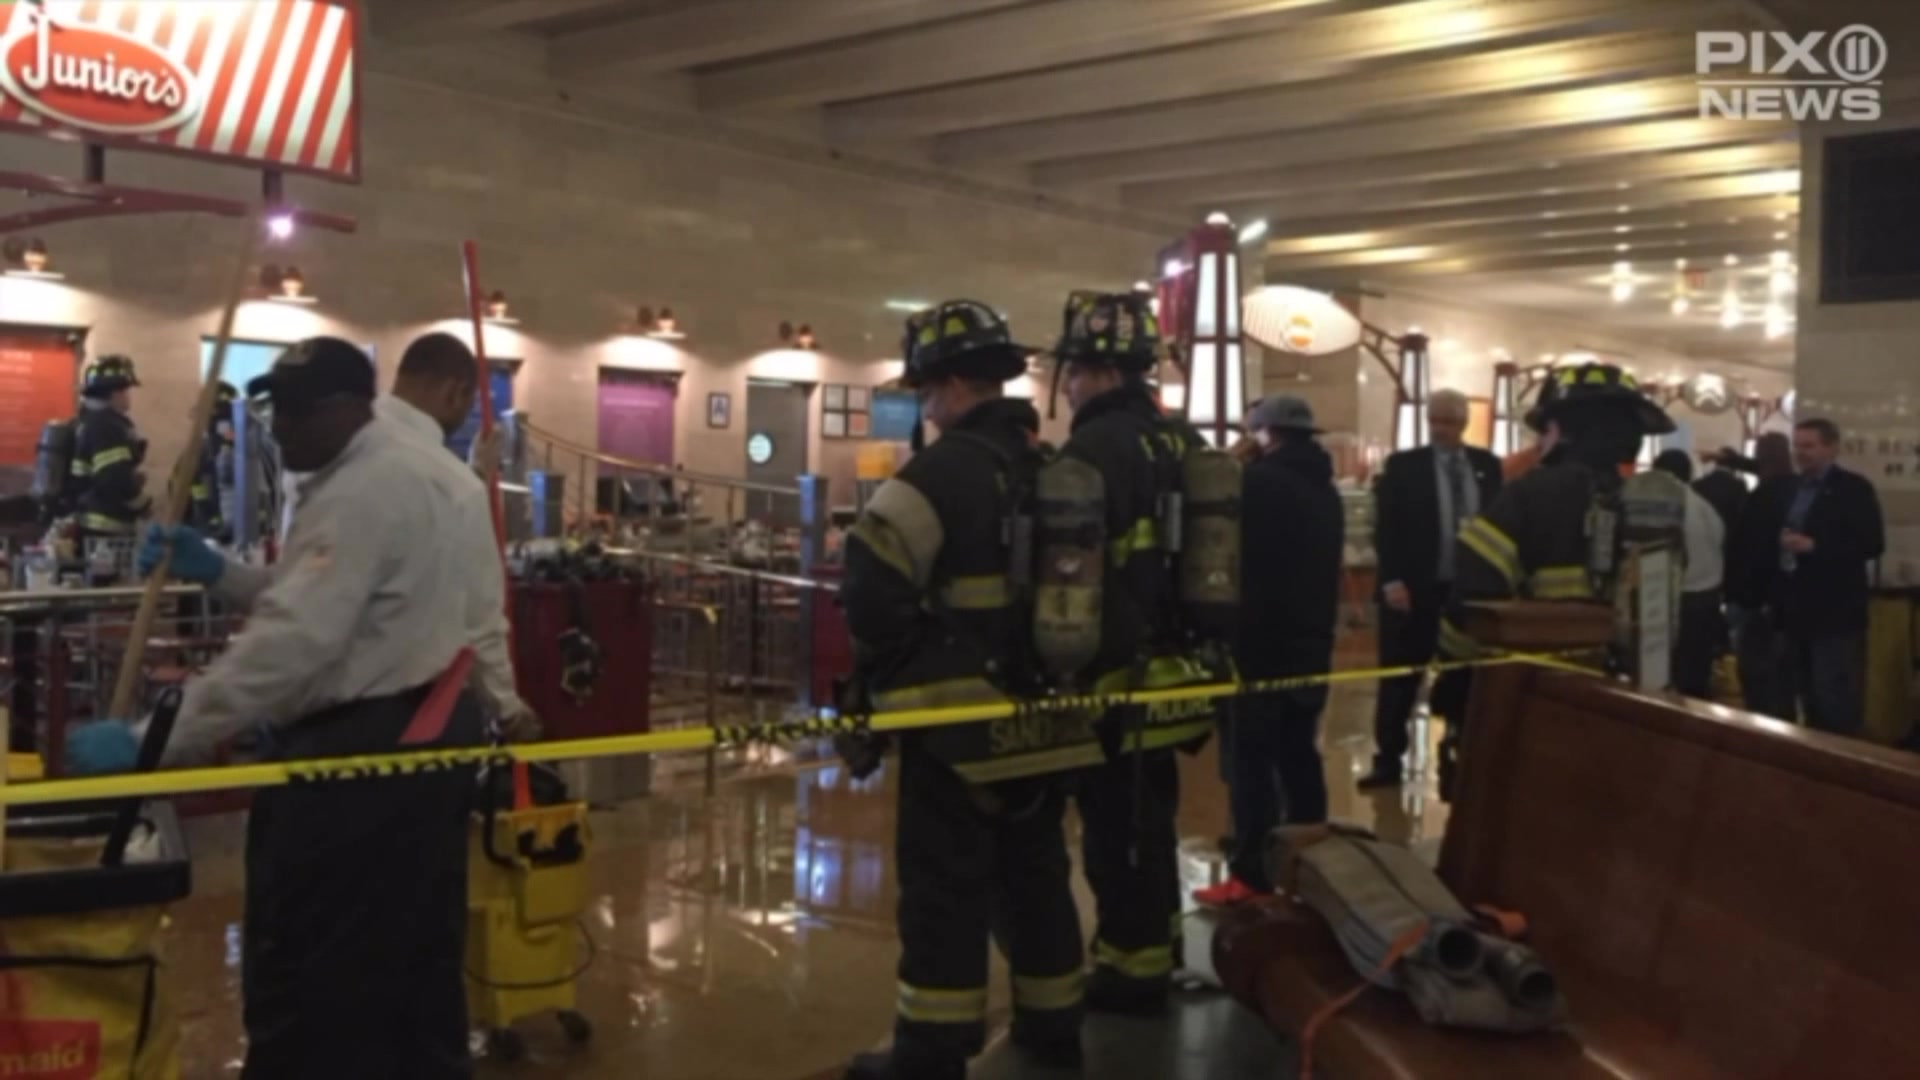 Fire In Restaurant Sends Smoke Billowing From Grand Central Station